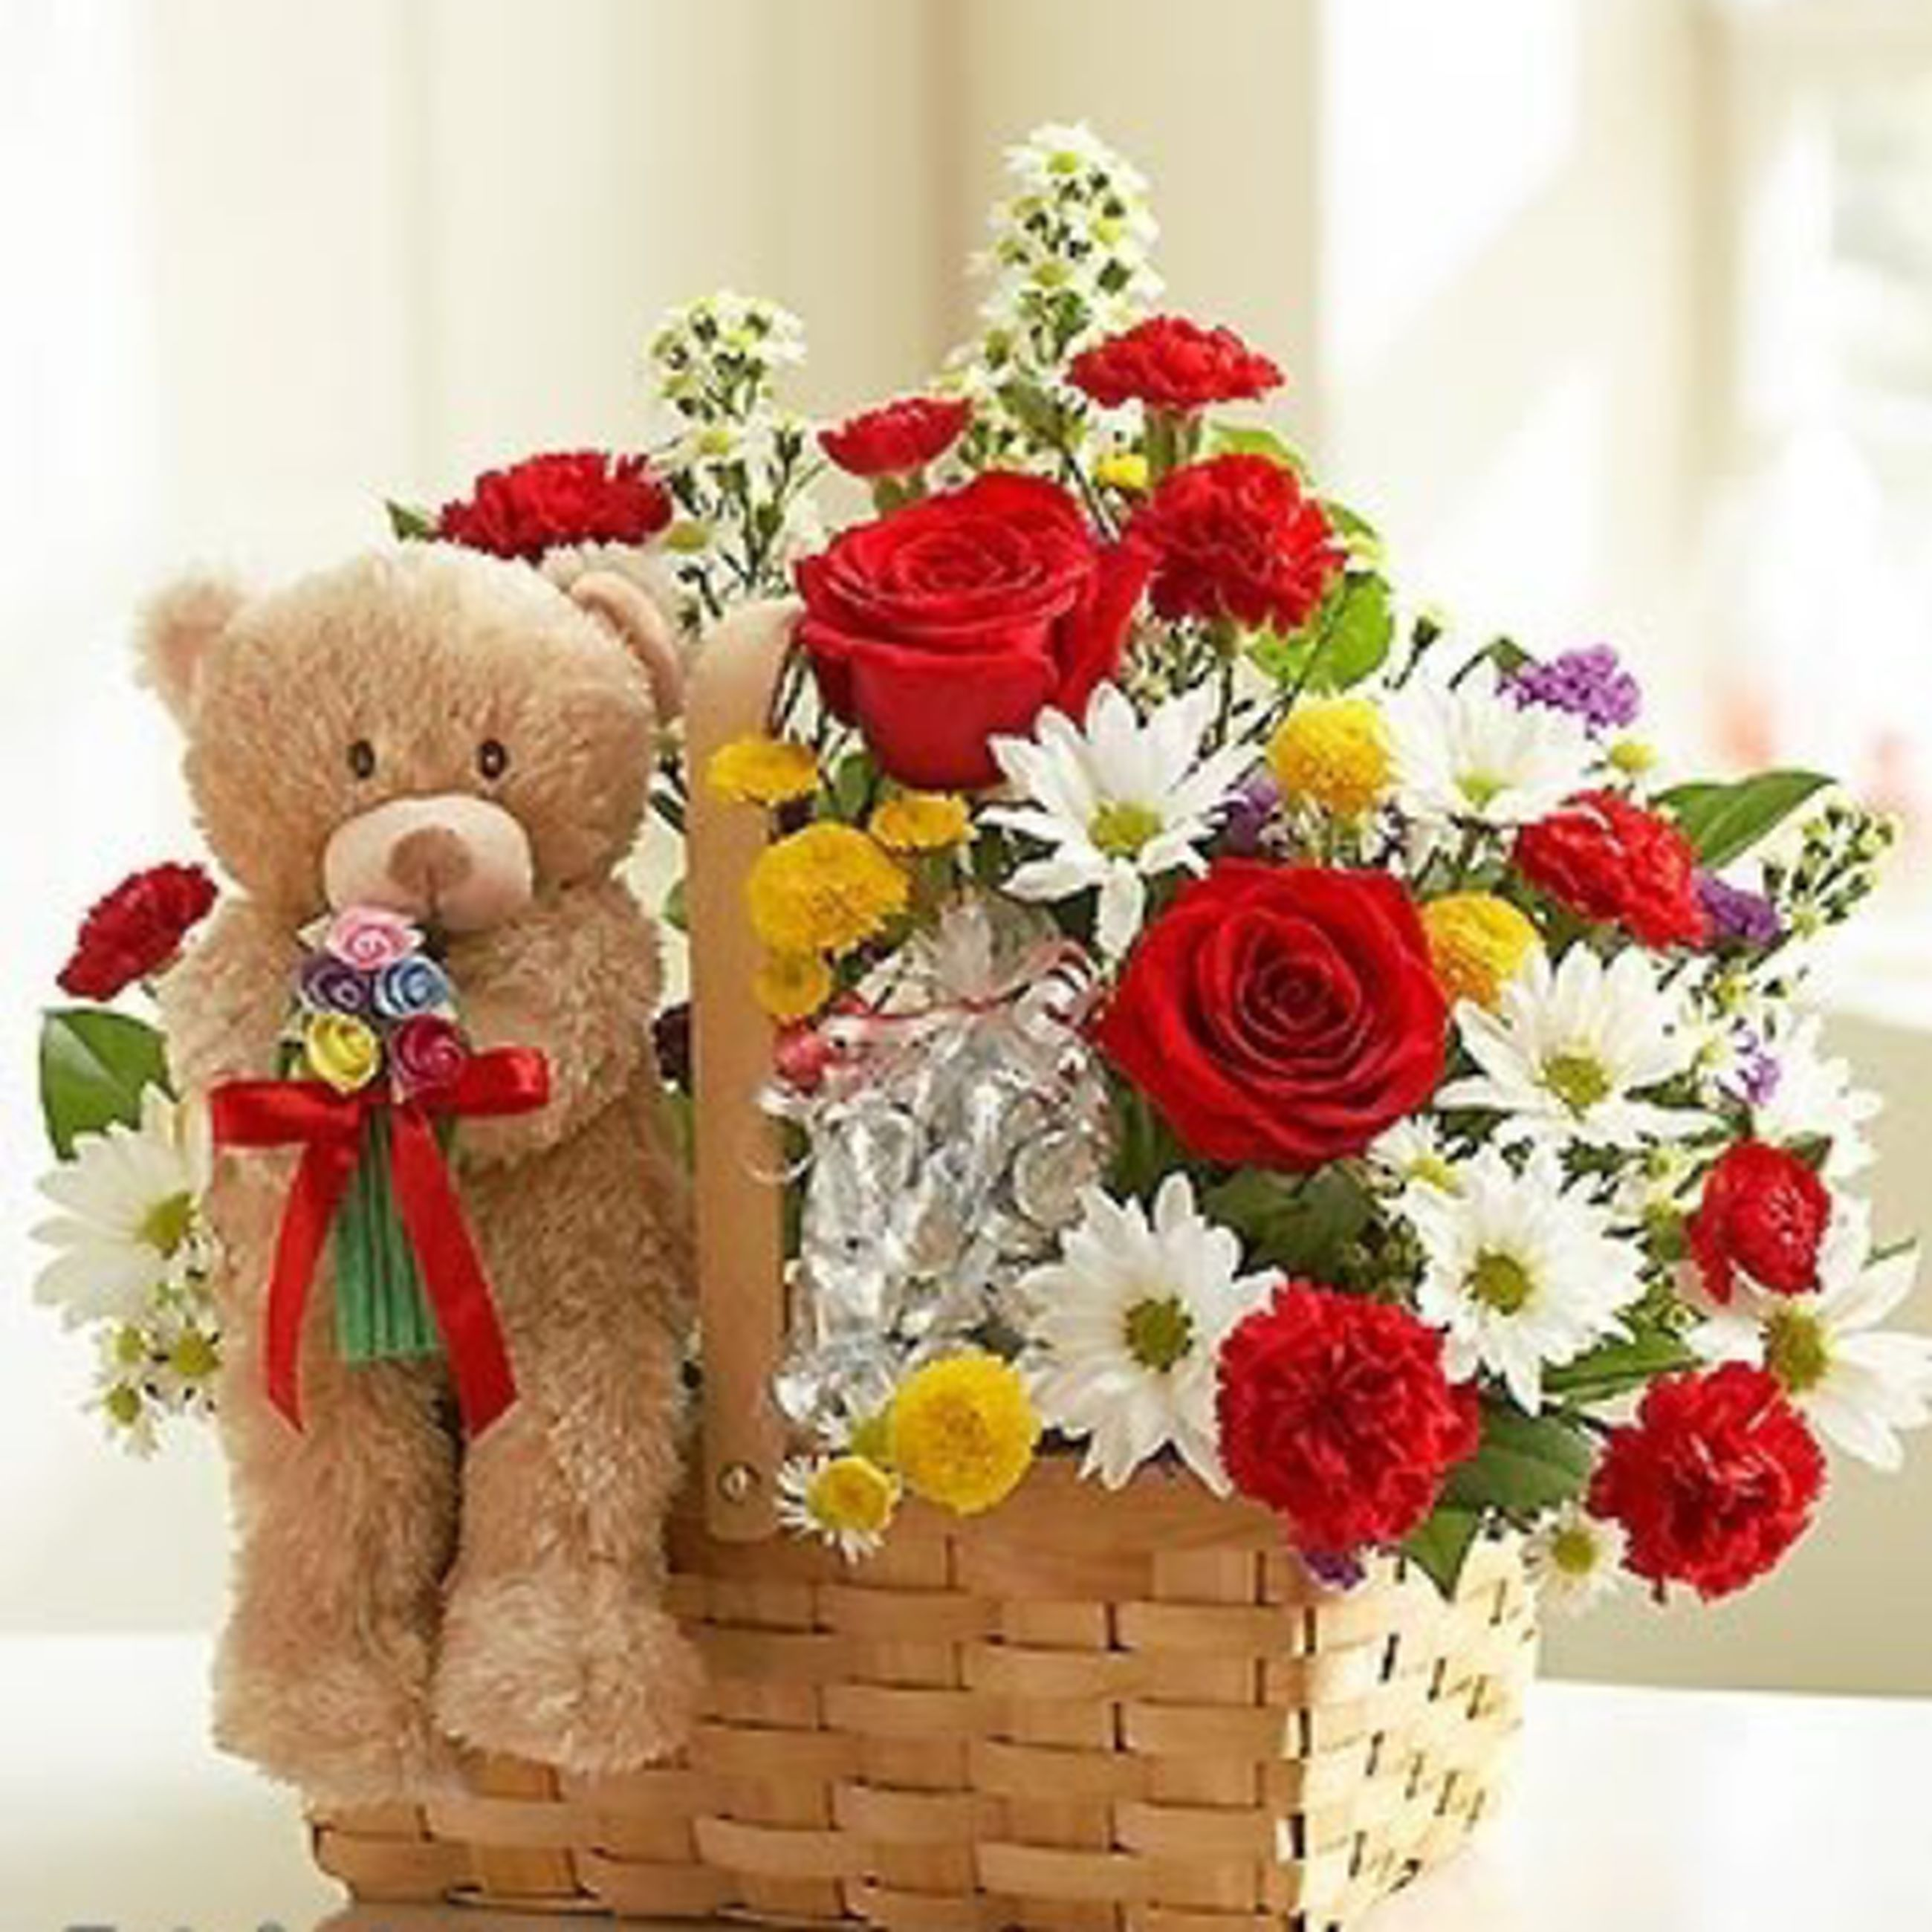 flower, indoors, bouquet, freshness, multi colored, fragility, vase, petal, flower head, home interior, bunch of flowers, decoration, flower arrangement, variation, toy, red, rose - flower, wall - building feature, art and craft, human representation